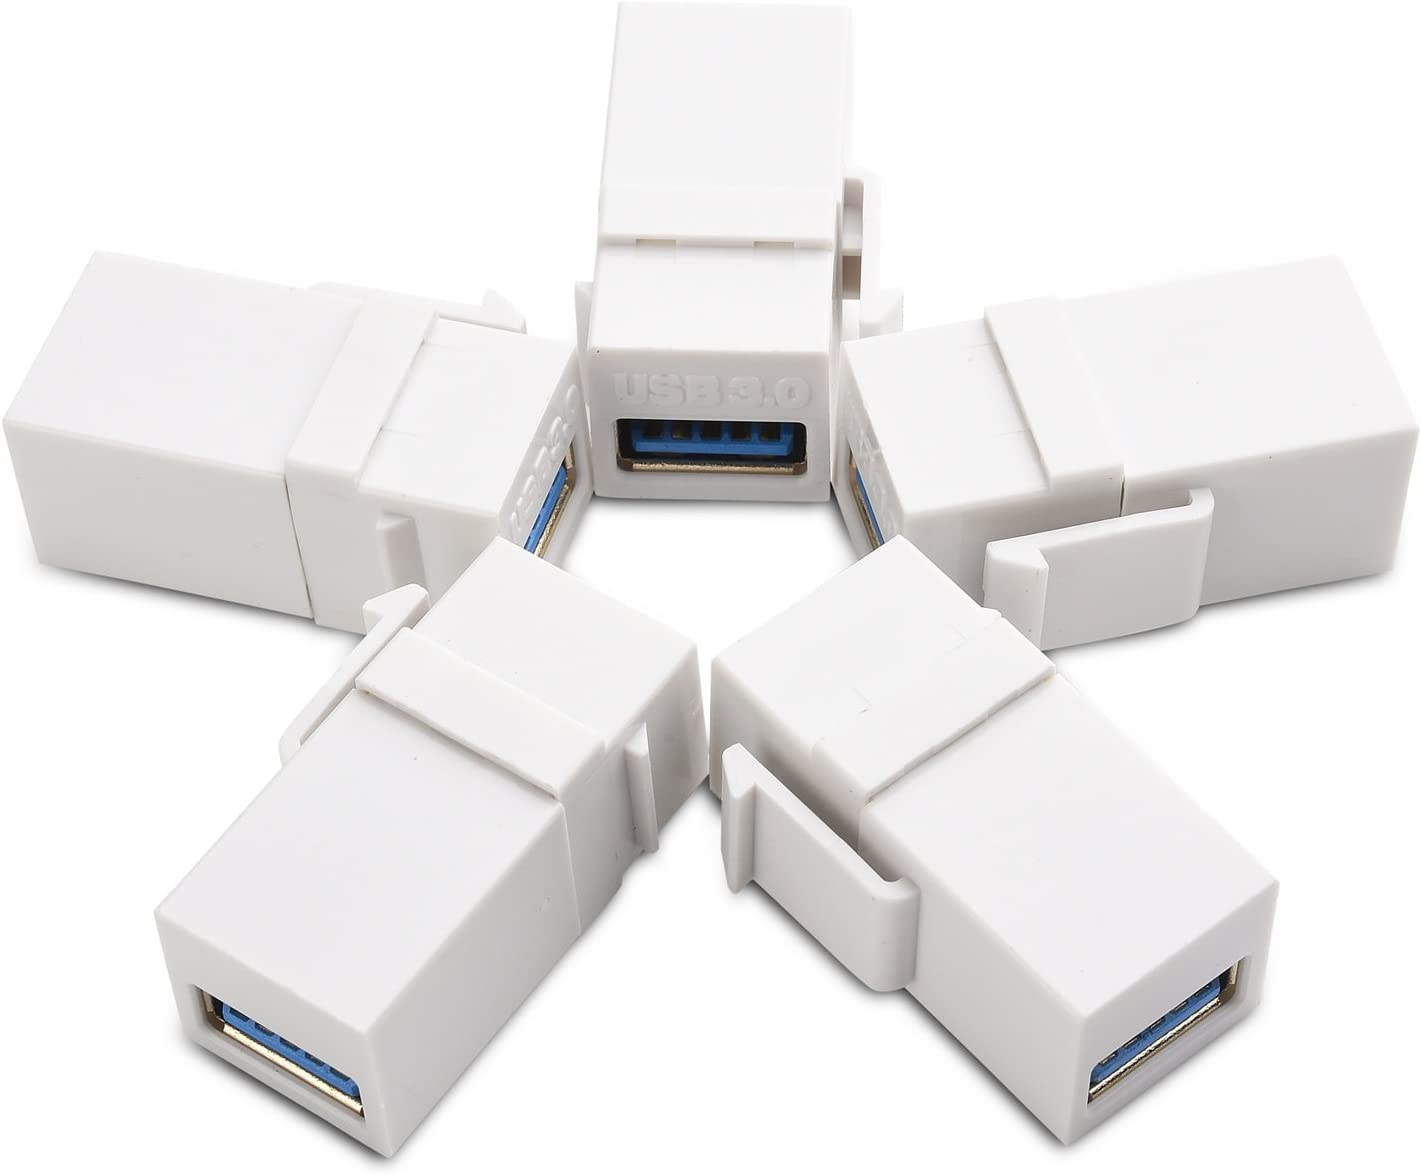 70% OFF Outlet Cable Matters 5-Pack USB 3.0 Keystone Max 42% OFF Jack Inserts Change Gender